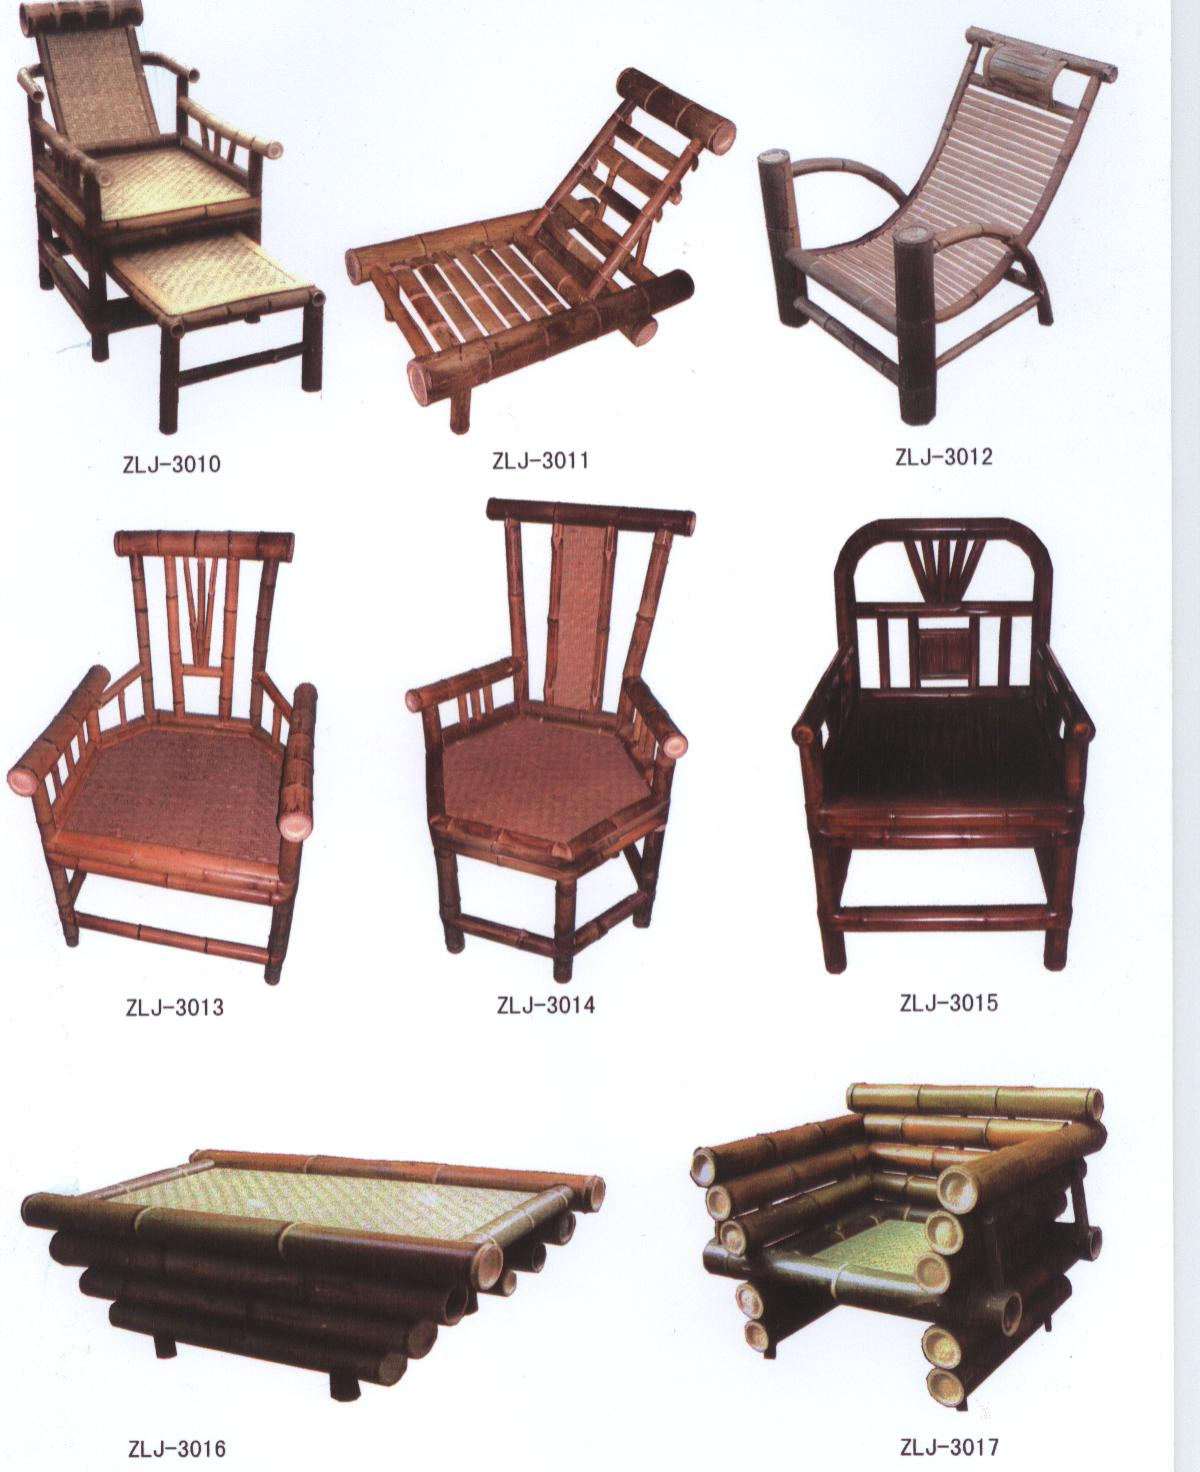 Bamboo furniture prices - For All Types Furniture Making Plz Contact On 09558424748 Only Available For Gujarat